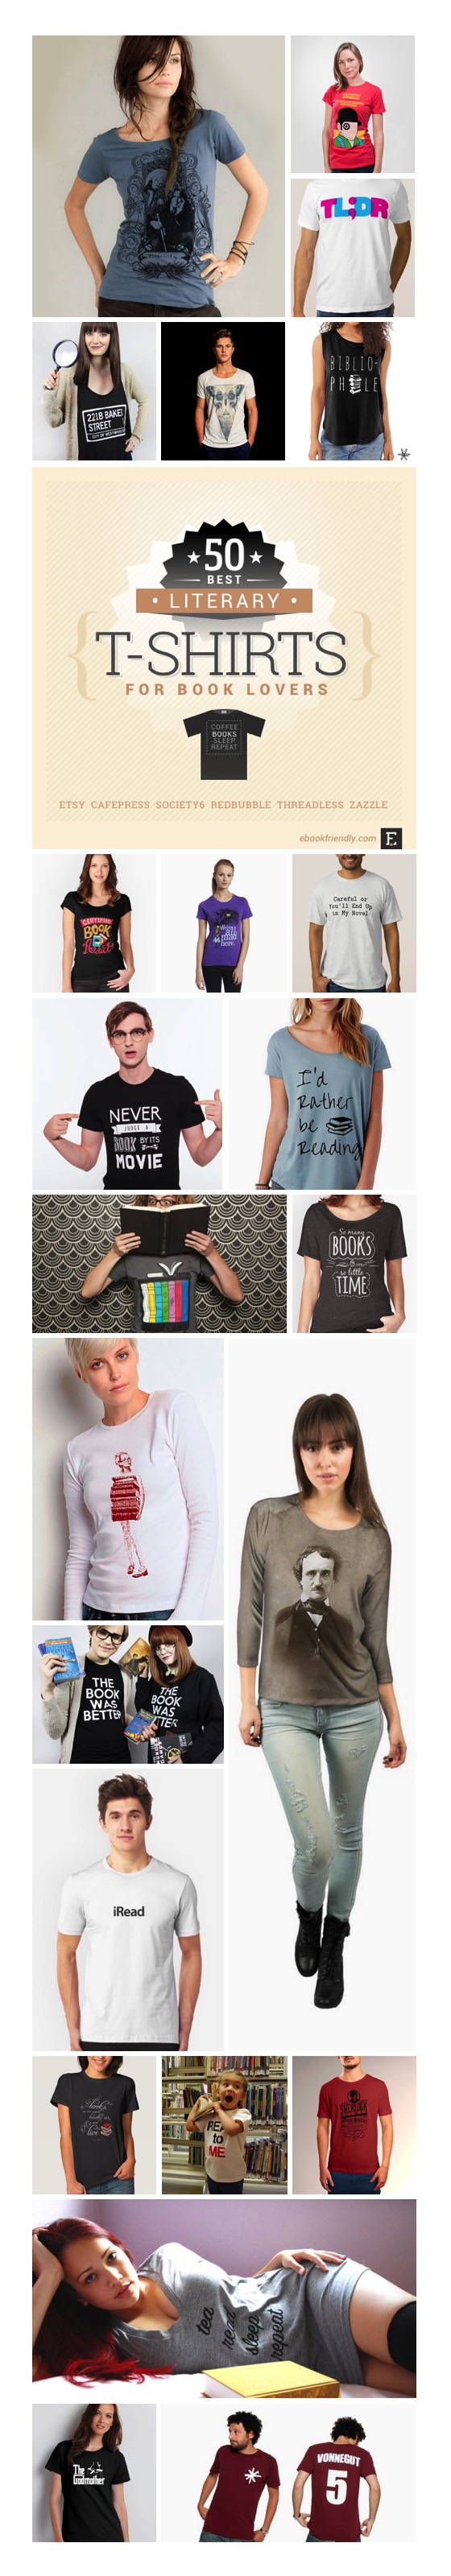 Best literary t-shirts for book lovers #infographic